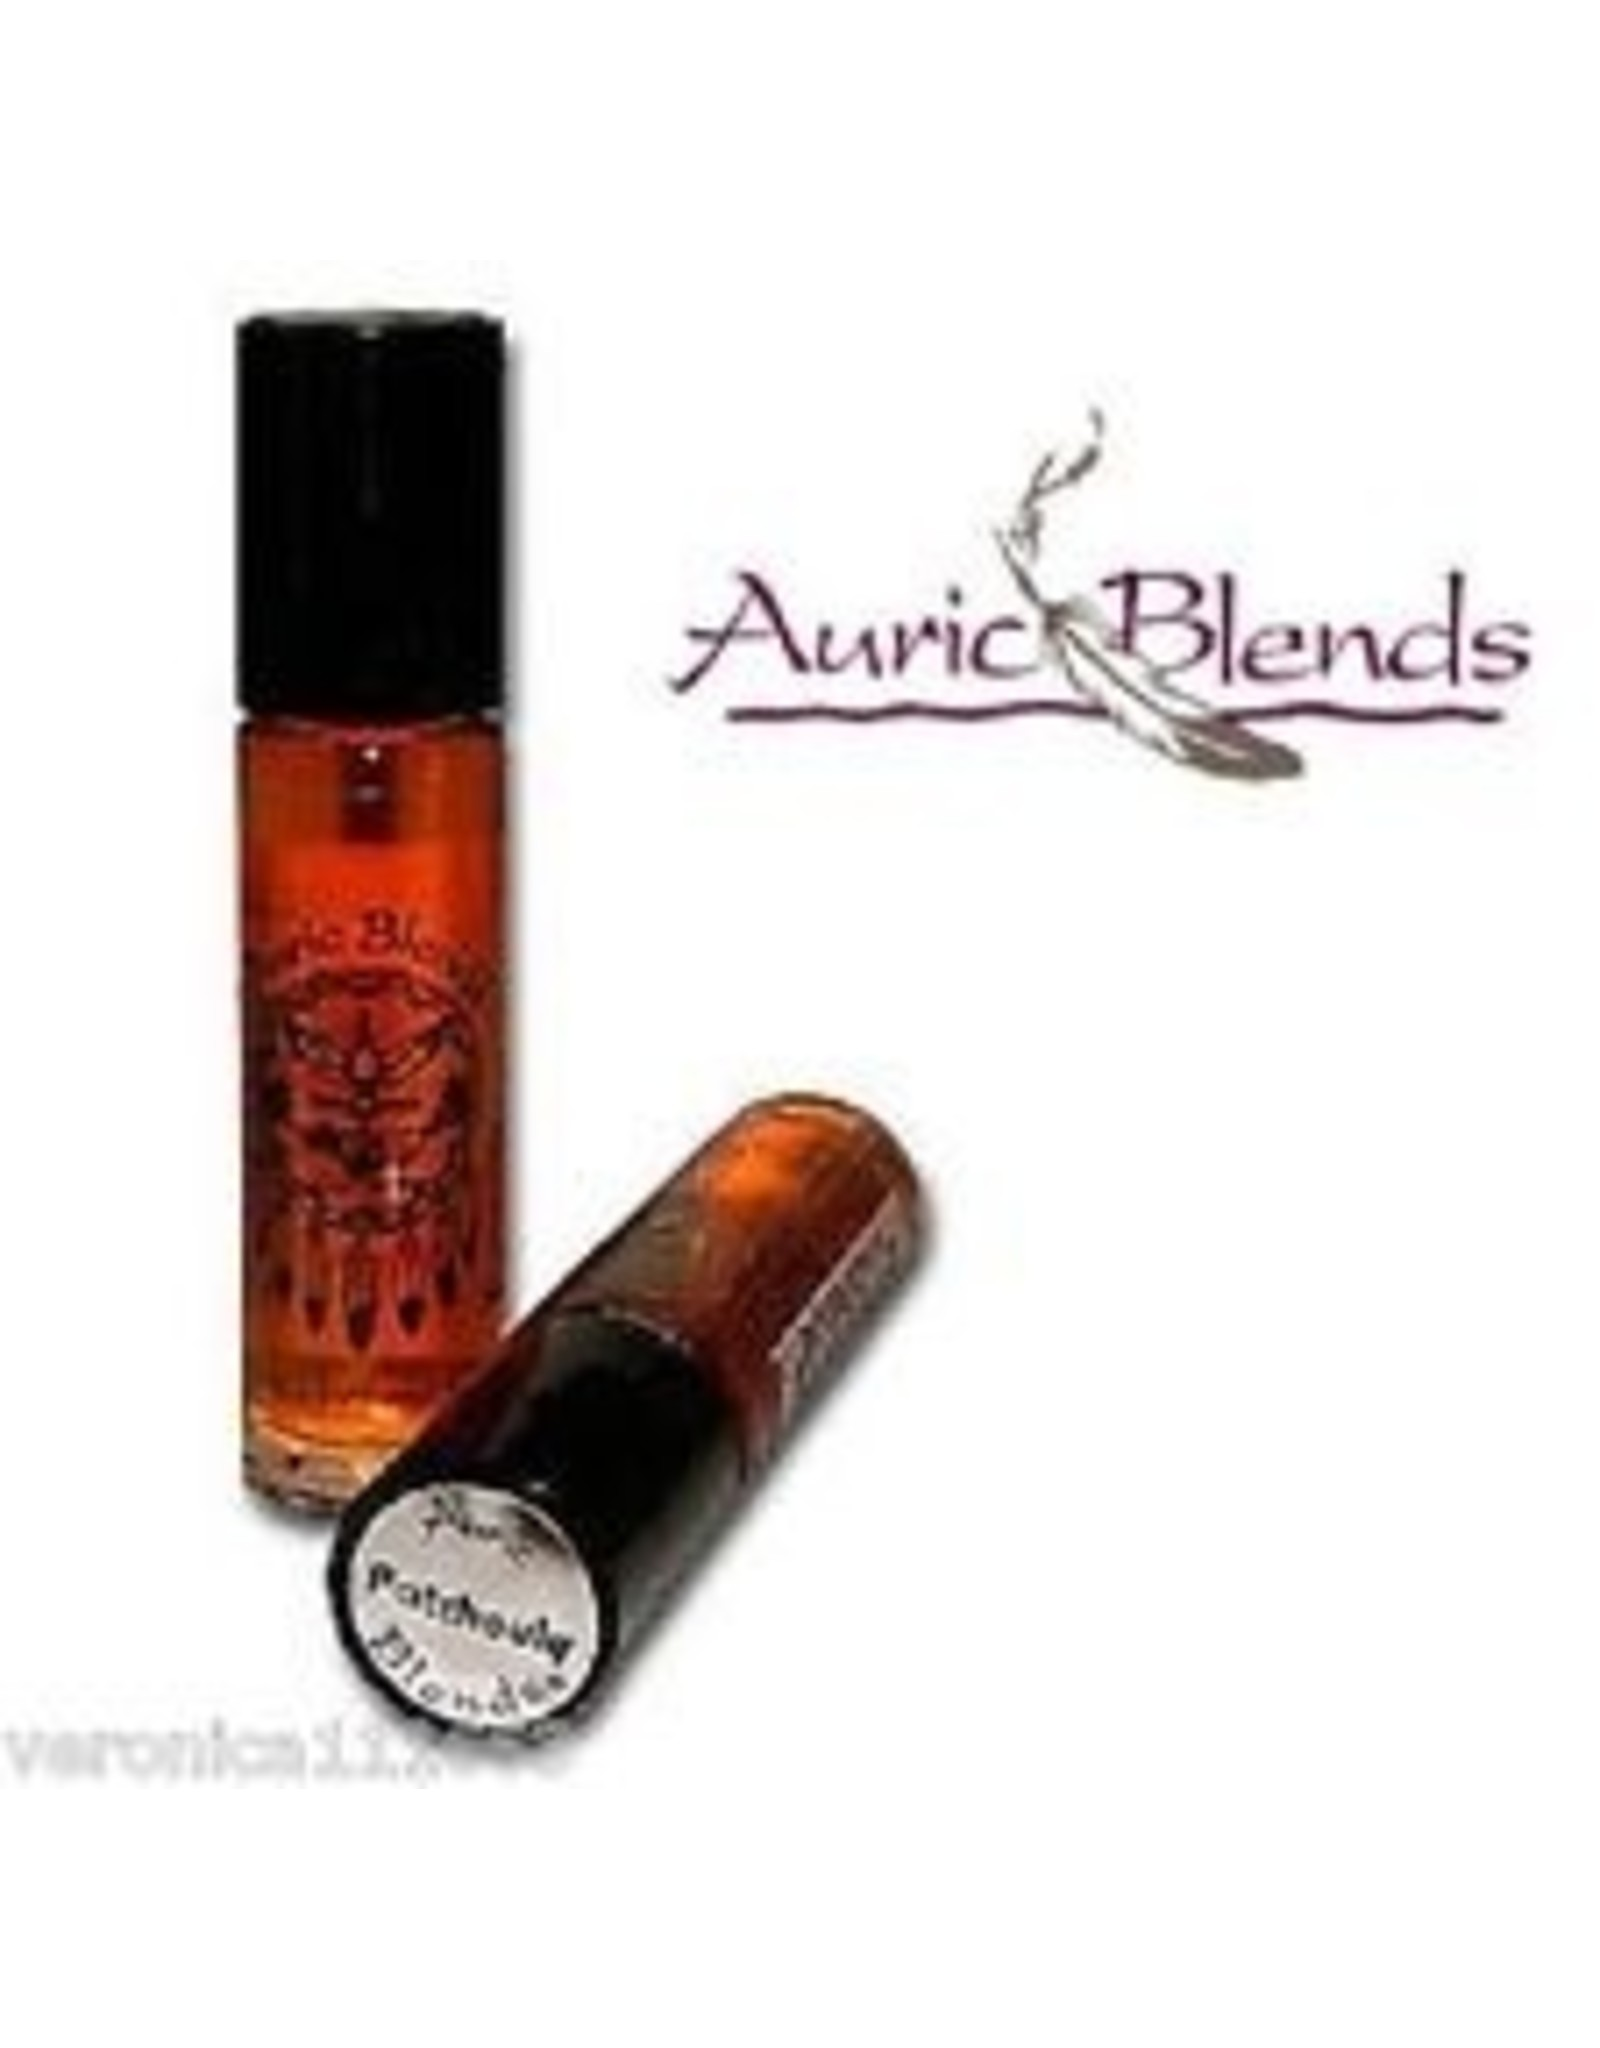 Auric Blends Patchouli Auric Blends Roll-on Oil